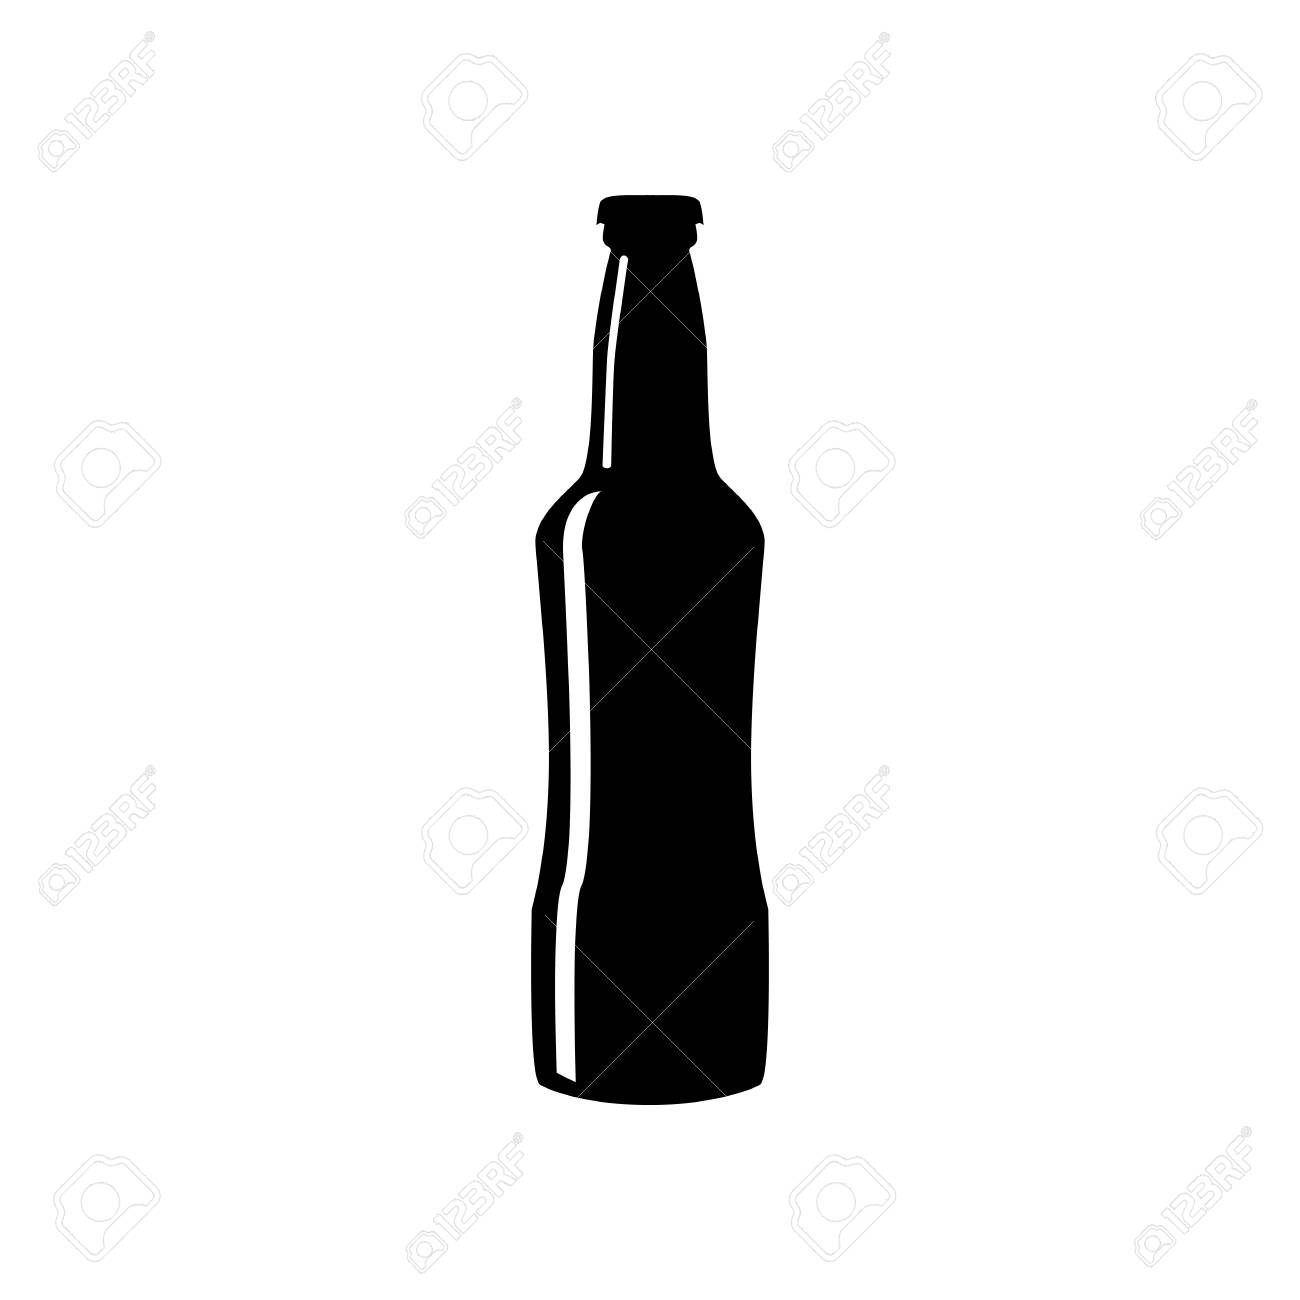 Beer bottle sign. Flat style black icon on white..